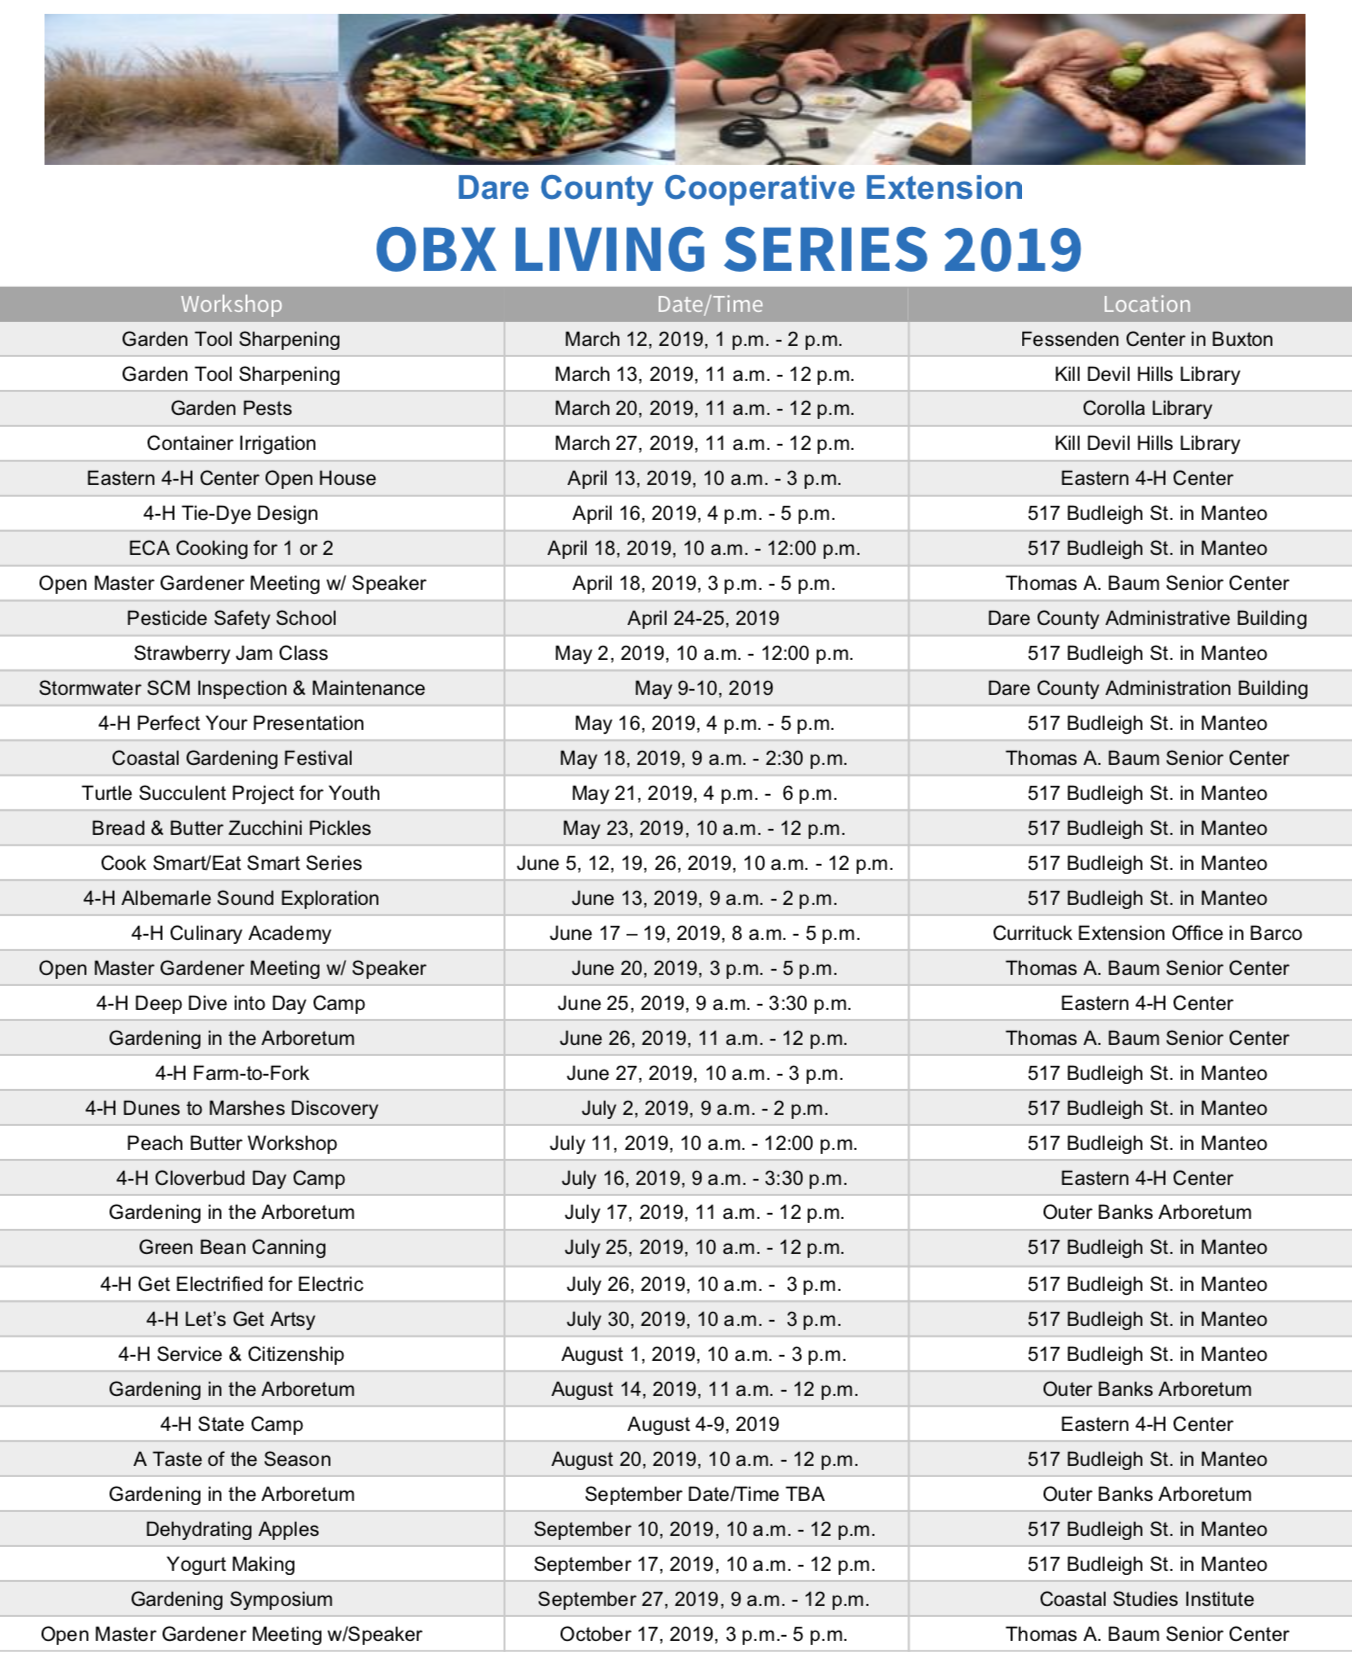 OBX Living Series 2019 schedule